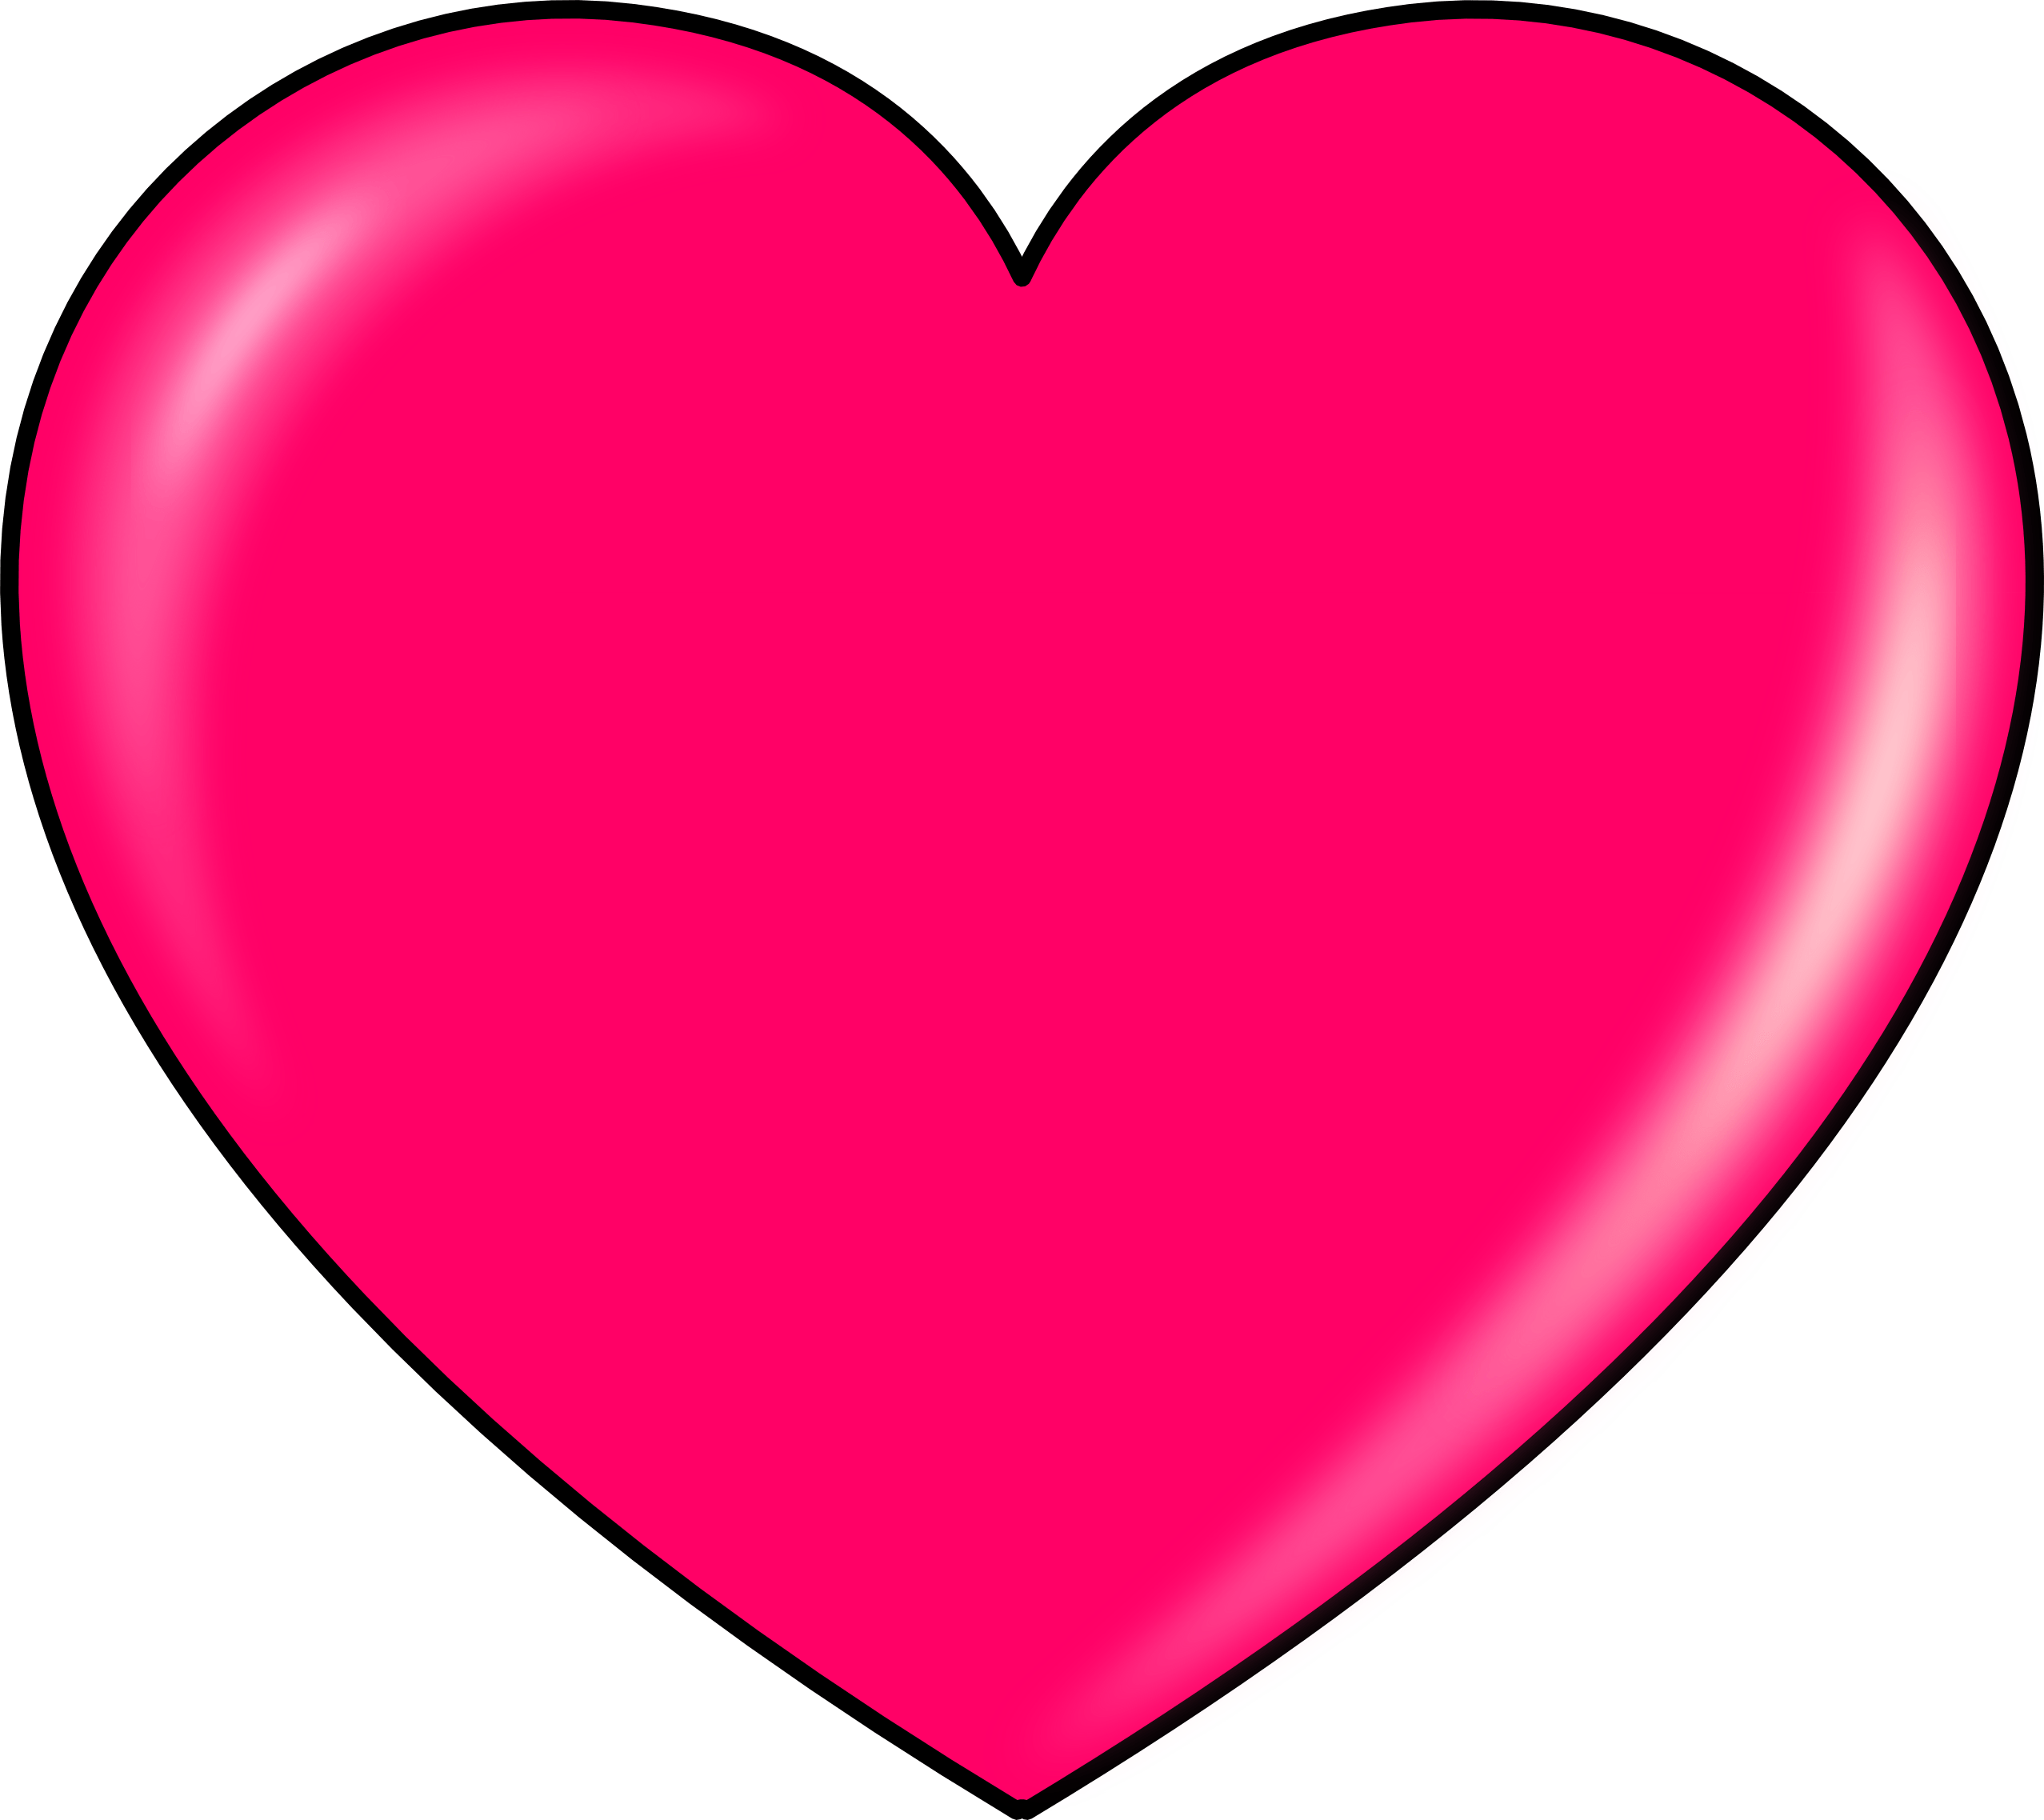 Clipart heart pink. Transparent png stickpng download